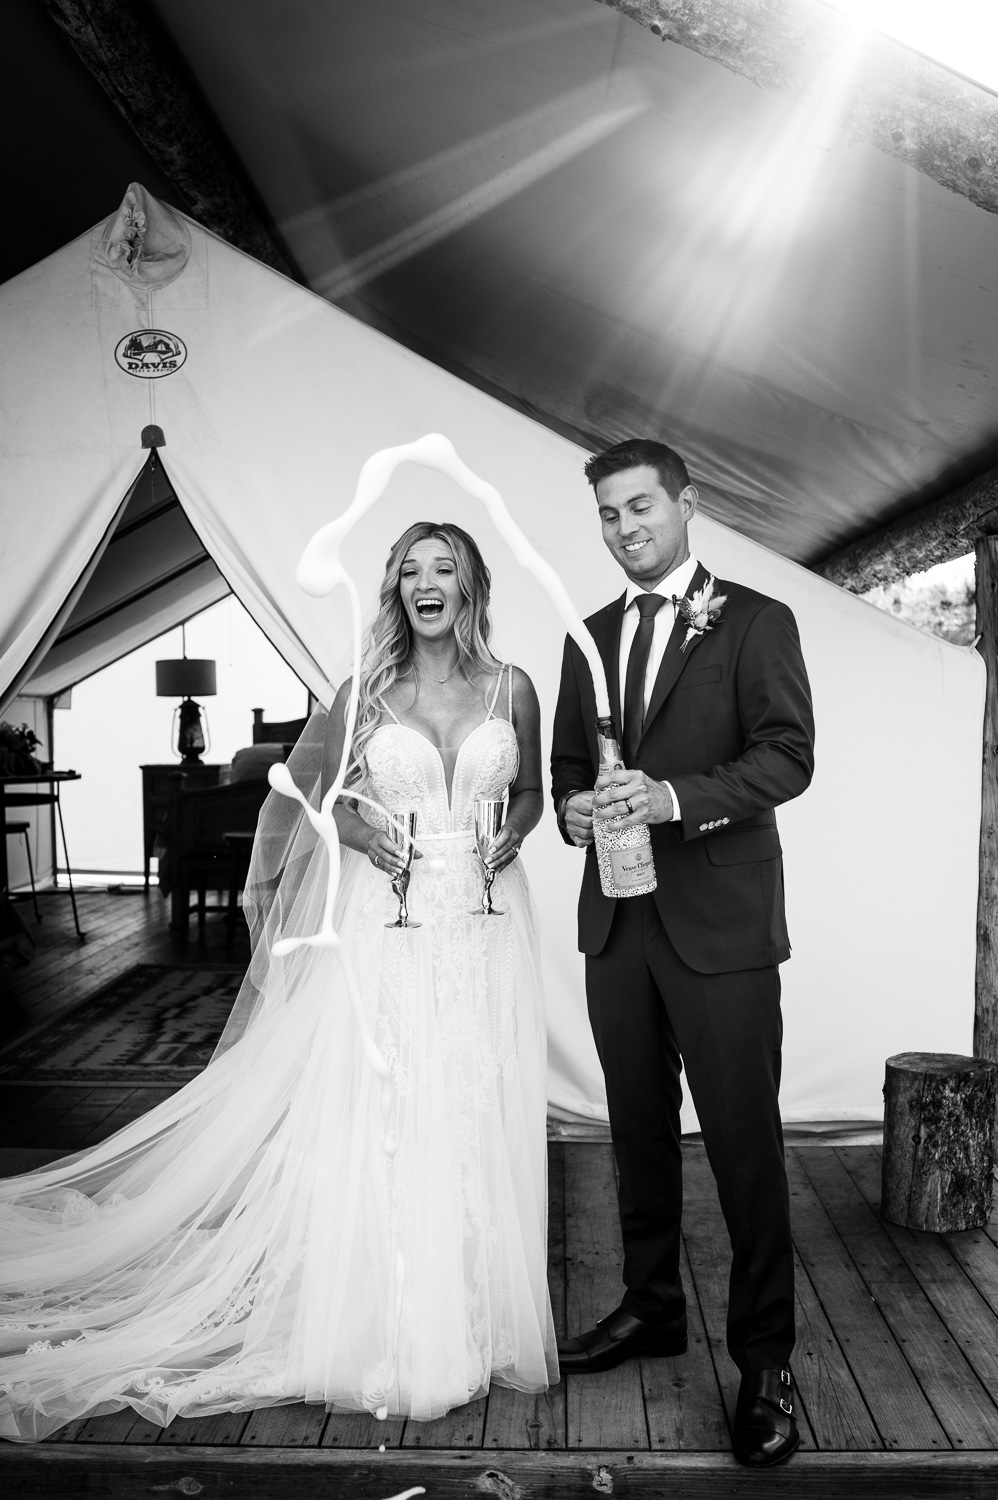 Bride and Groom laugh as Champagne sprays out over their heads in front of glamping tent at Piney River Ranch Colorado